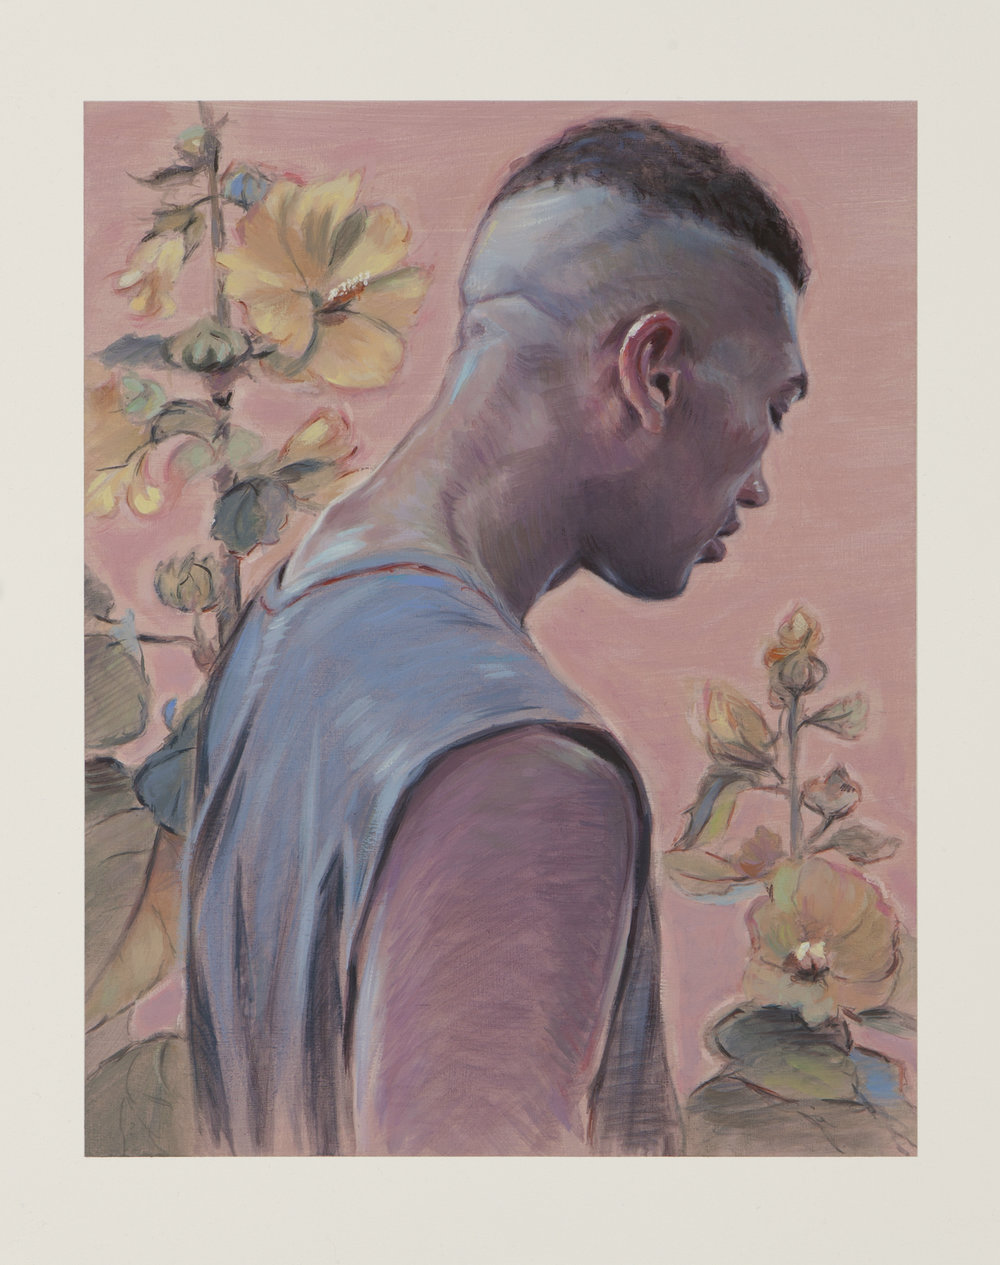 Kris Knight, Golden Hollyhock, 2017, oil on prepared cotton paper, image: 14 x11 inches